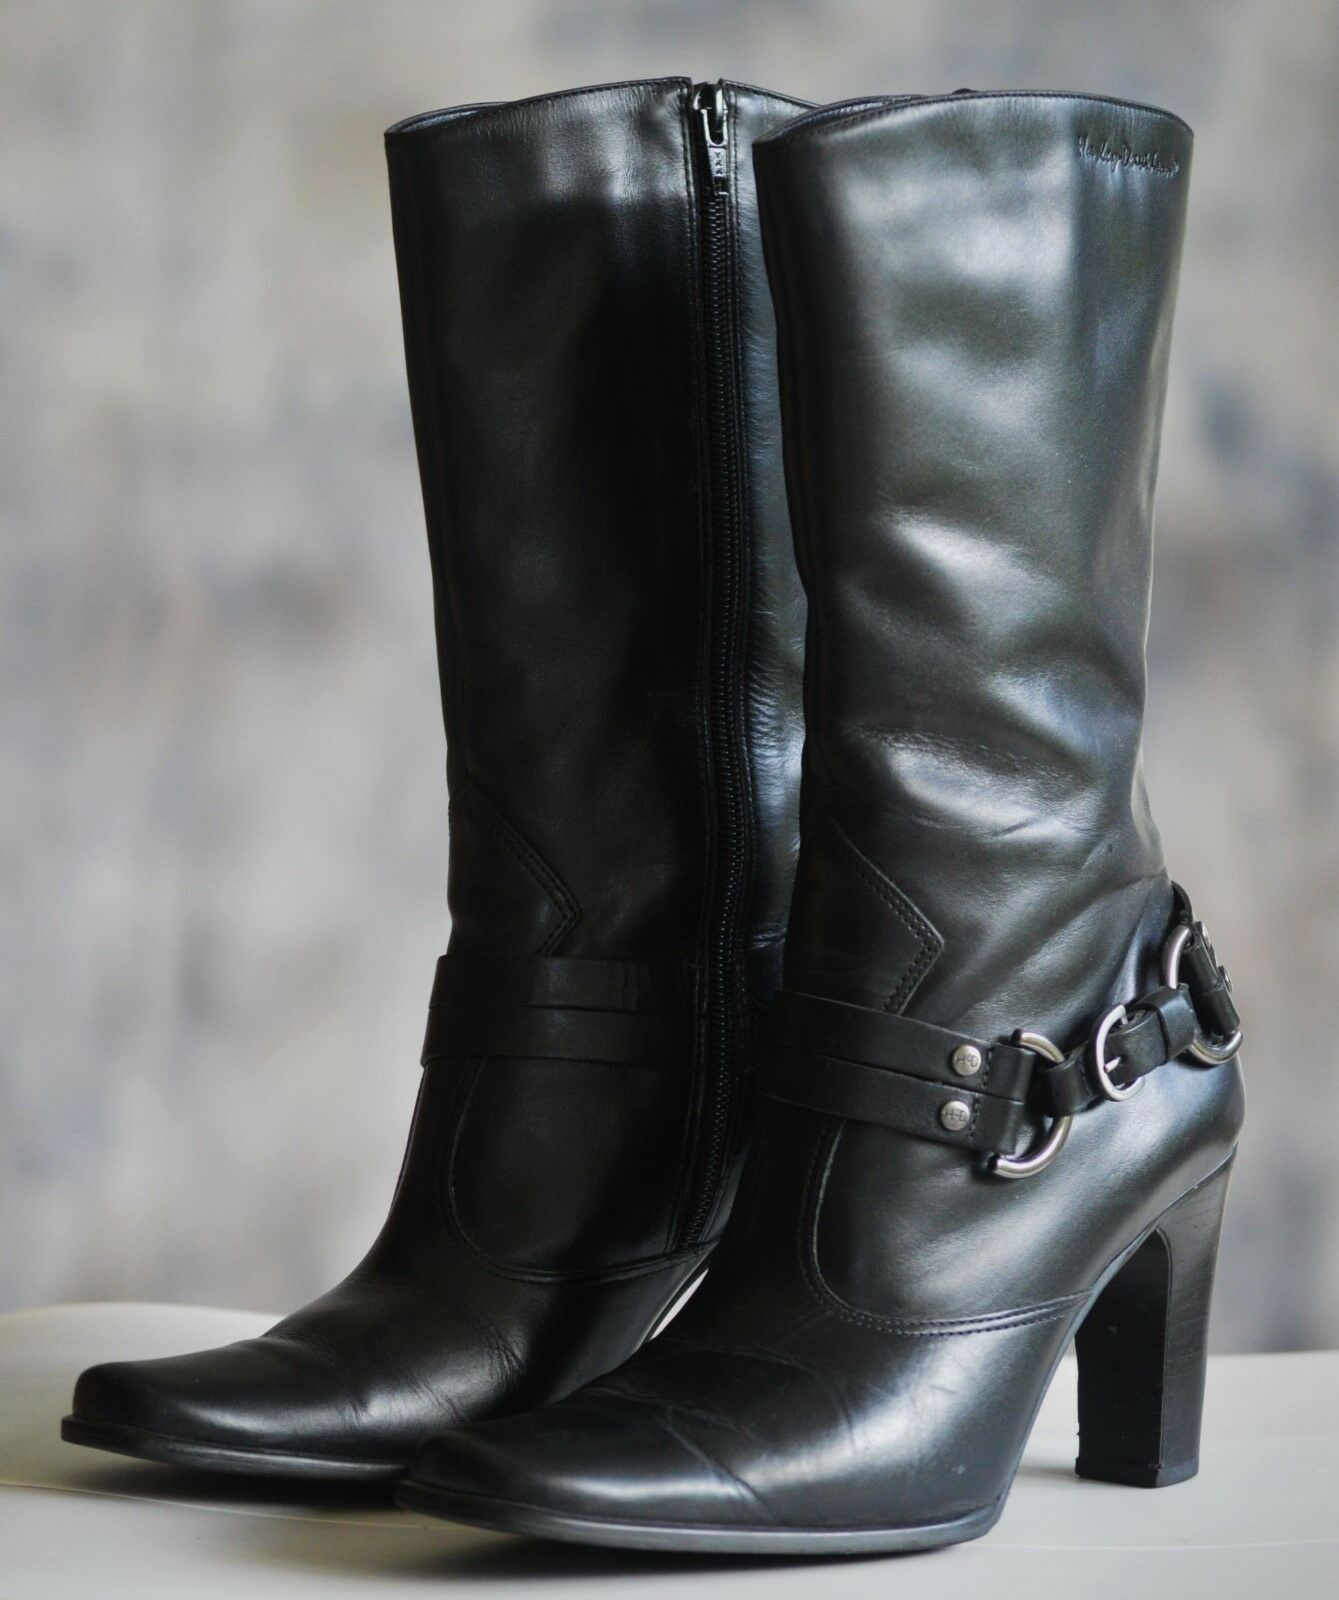 donna HARLEY DAVIDSON Motorcycle stivali Sz 7.5M nero Leather Mid Calf 3.5  Heel